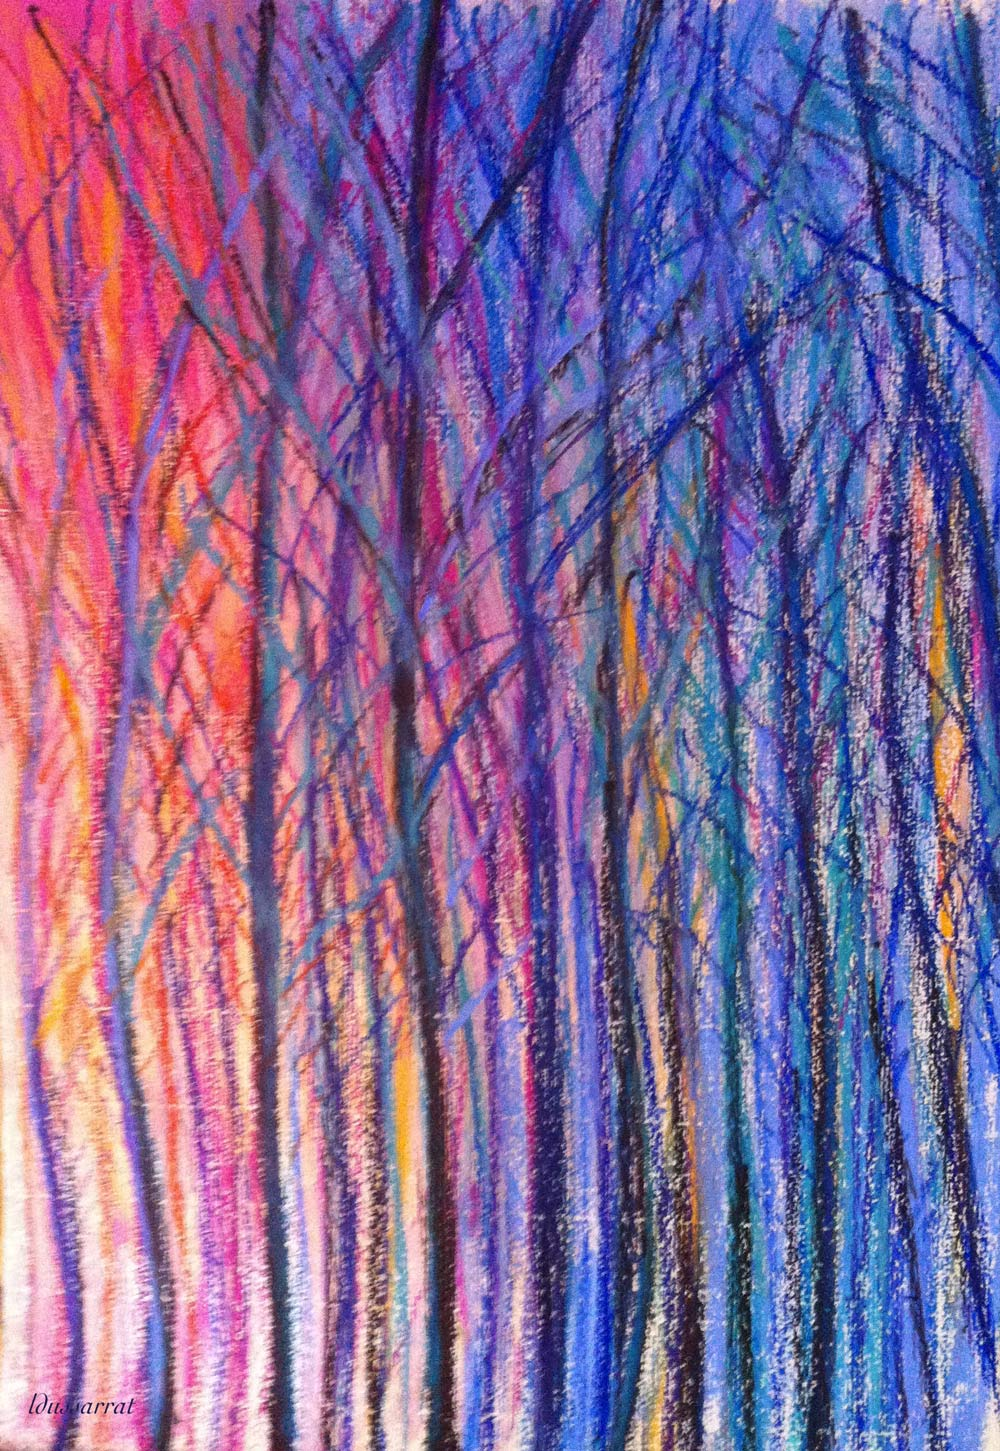 Lahonce forest no. 4. Oil pastel on paper, 42x30, 2015